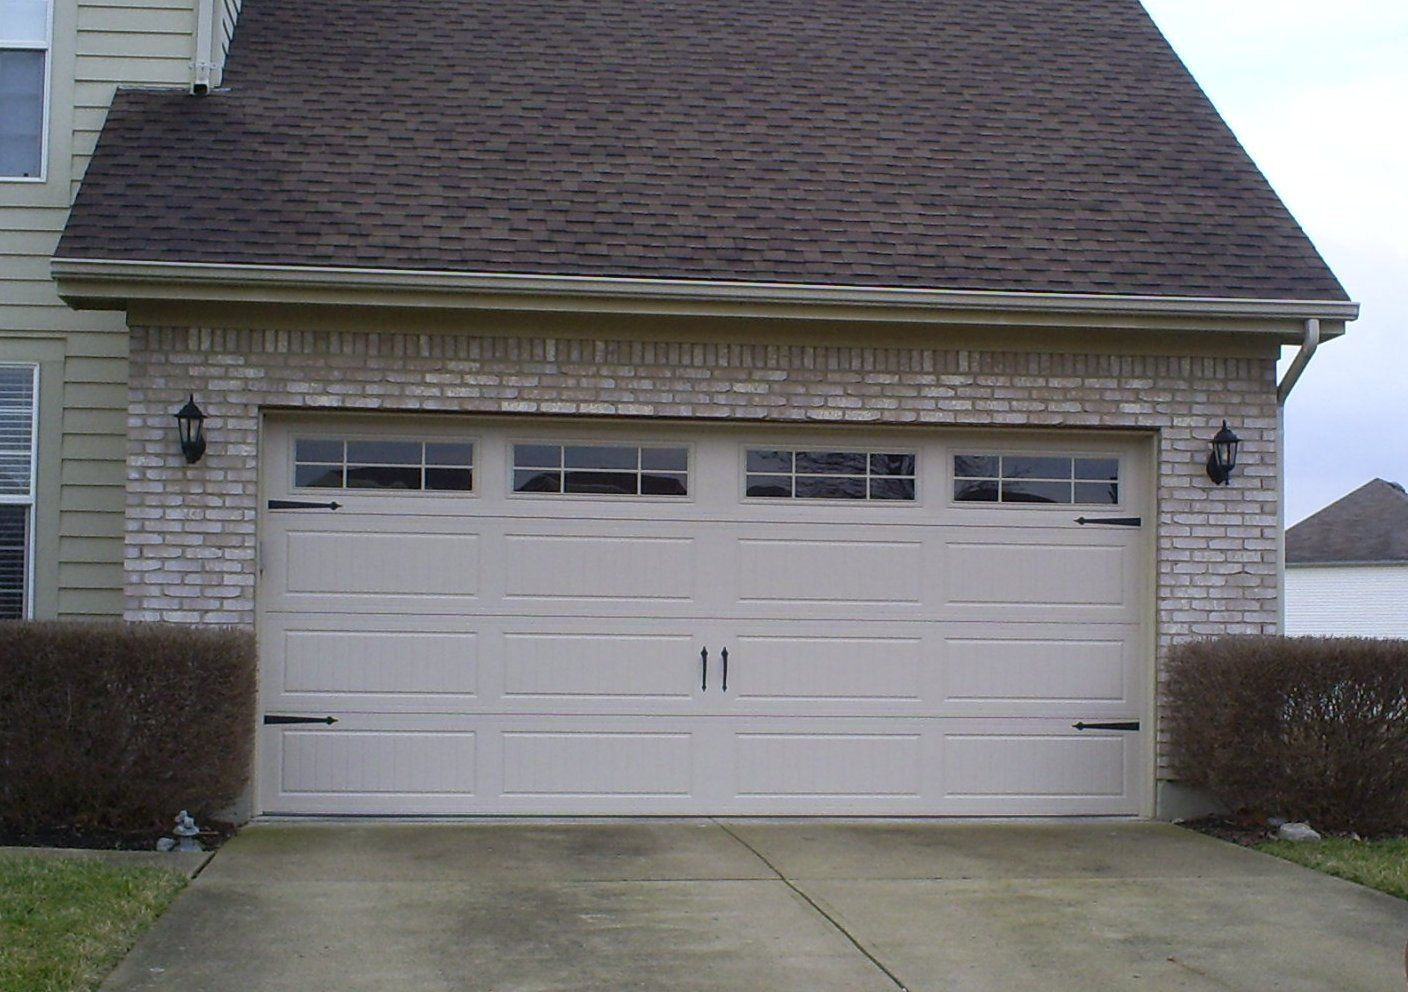 AAA Garage Door Repair Herndon VA Has Been Rated With 22 Experience Points  Based On Fixru0027s Rating System.